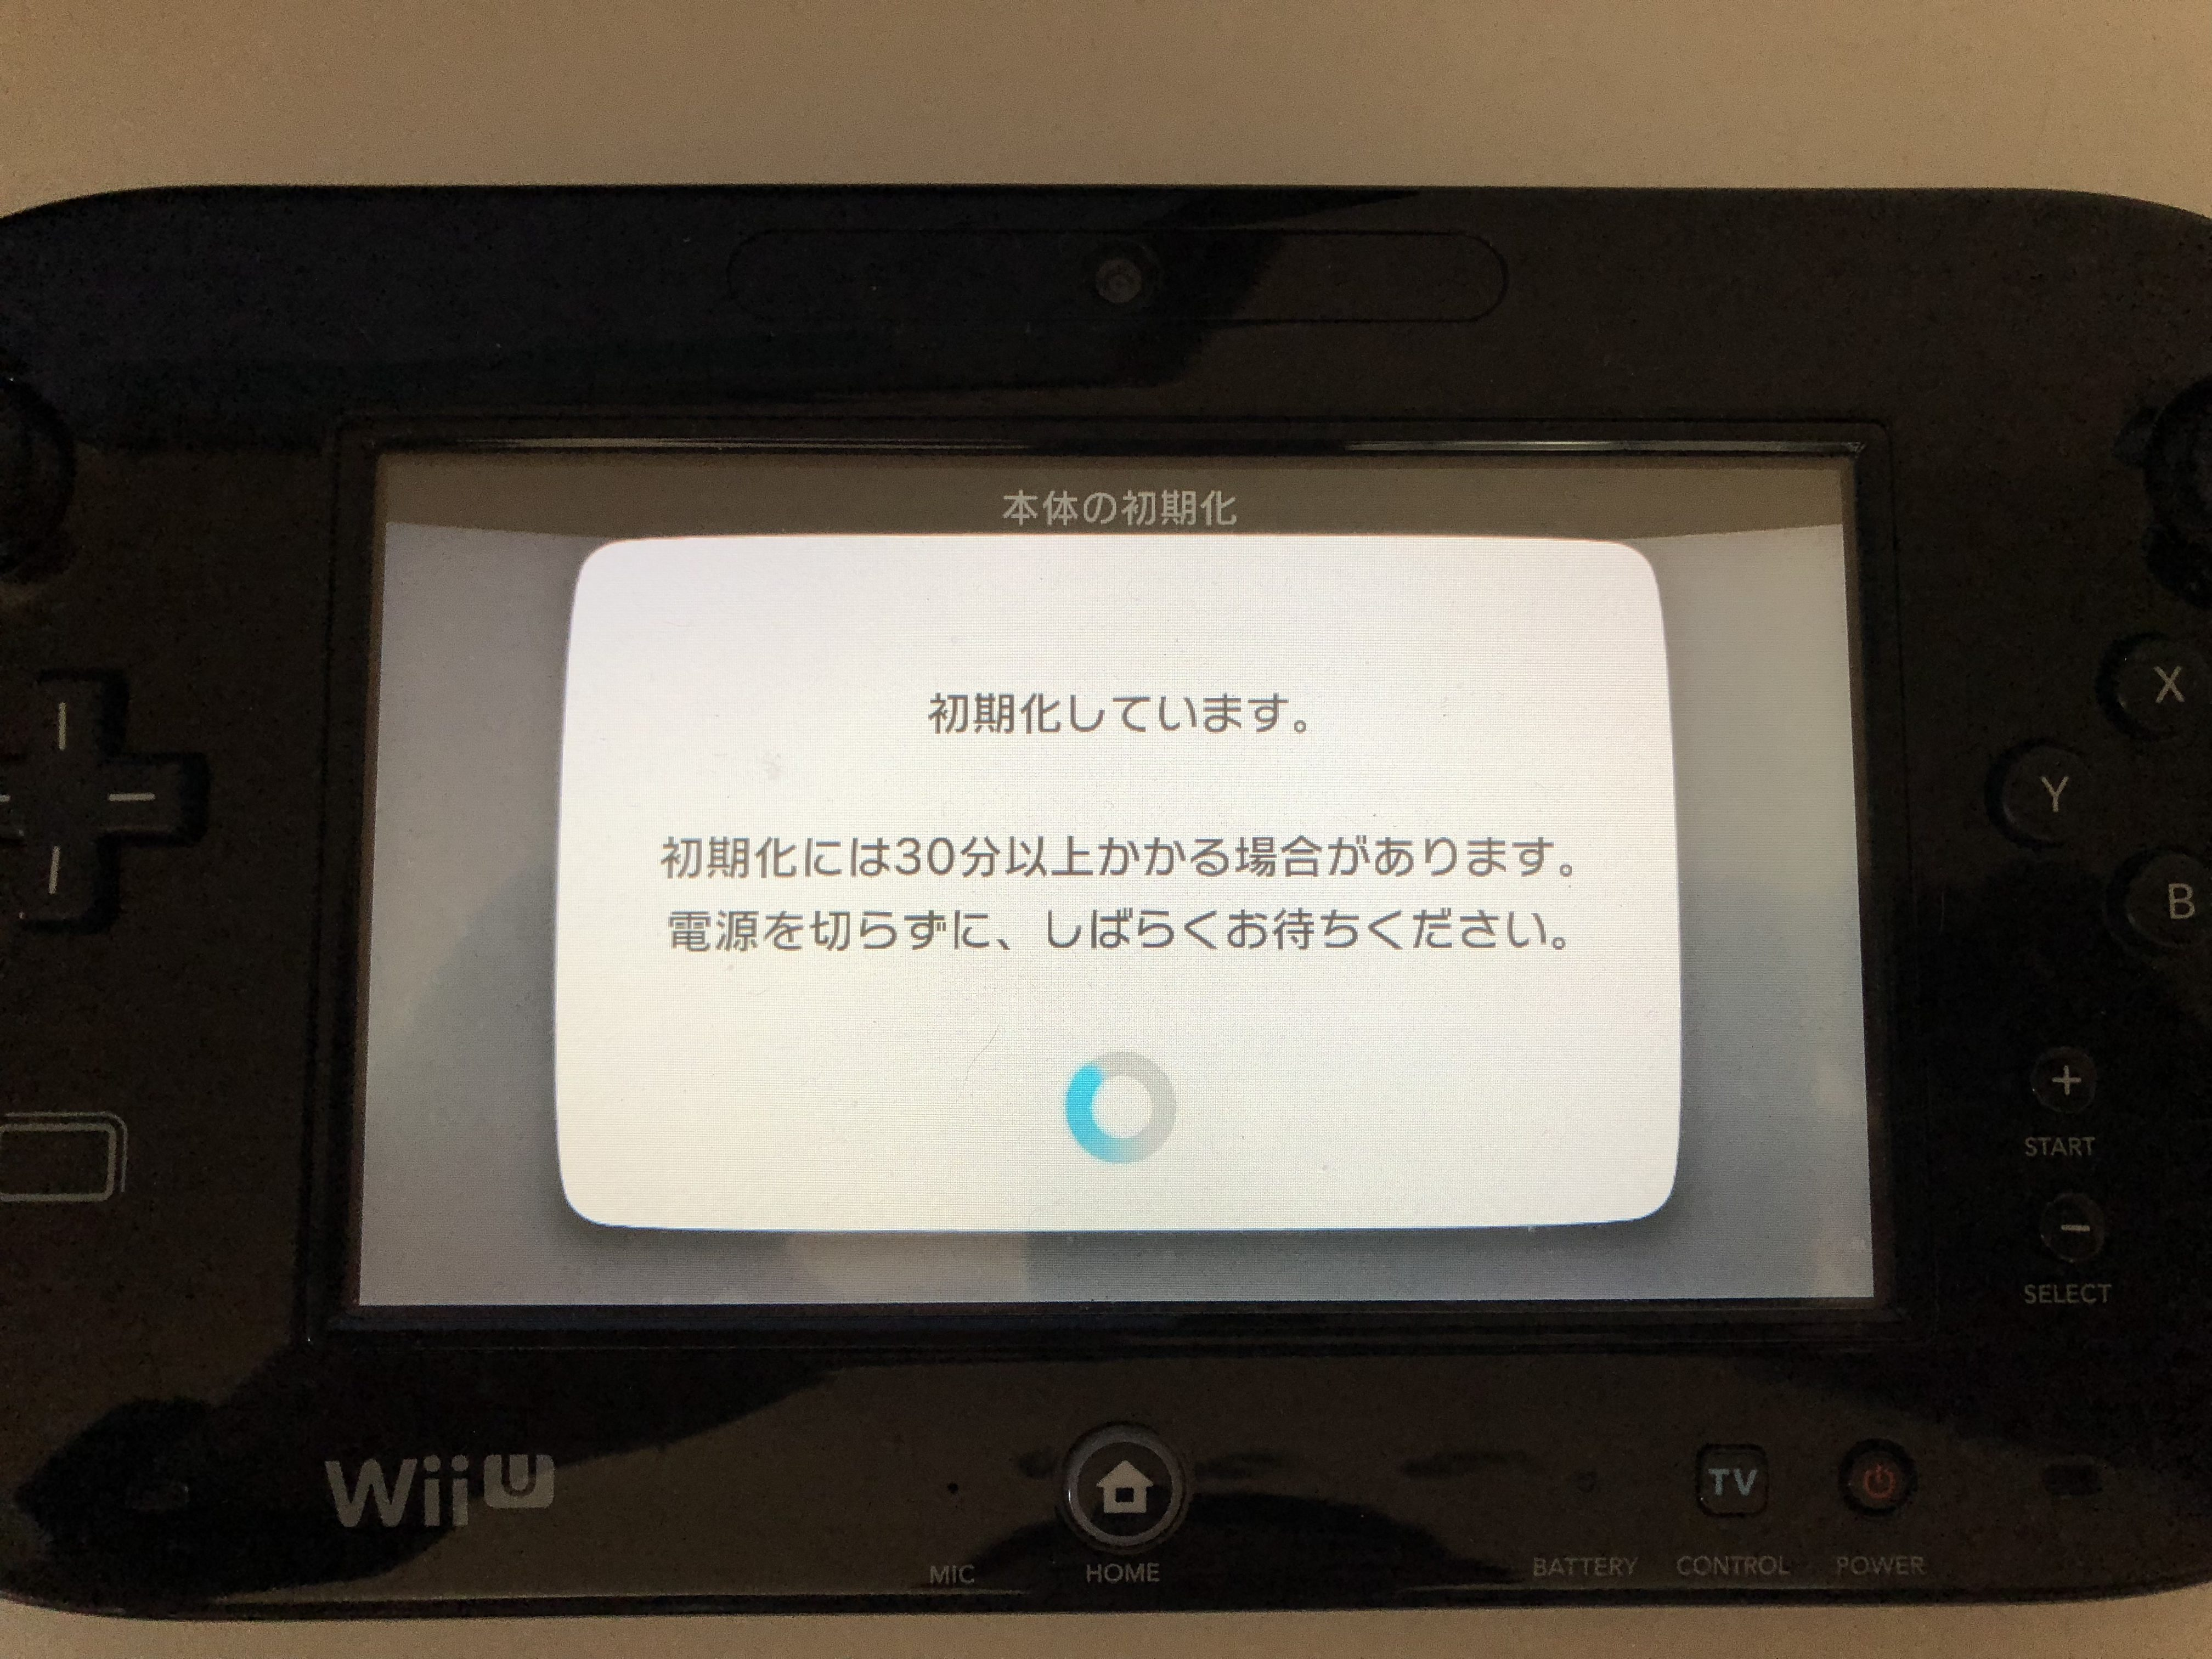 wii-u-data-formatting-wii-shopping-channel-dont-forget-6